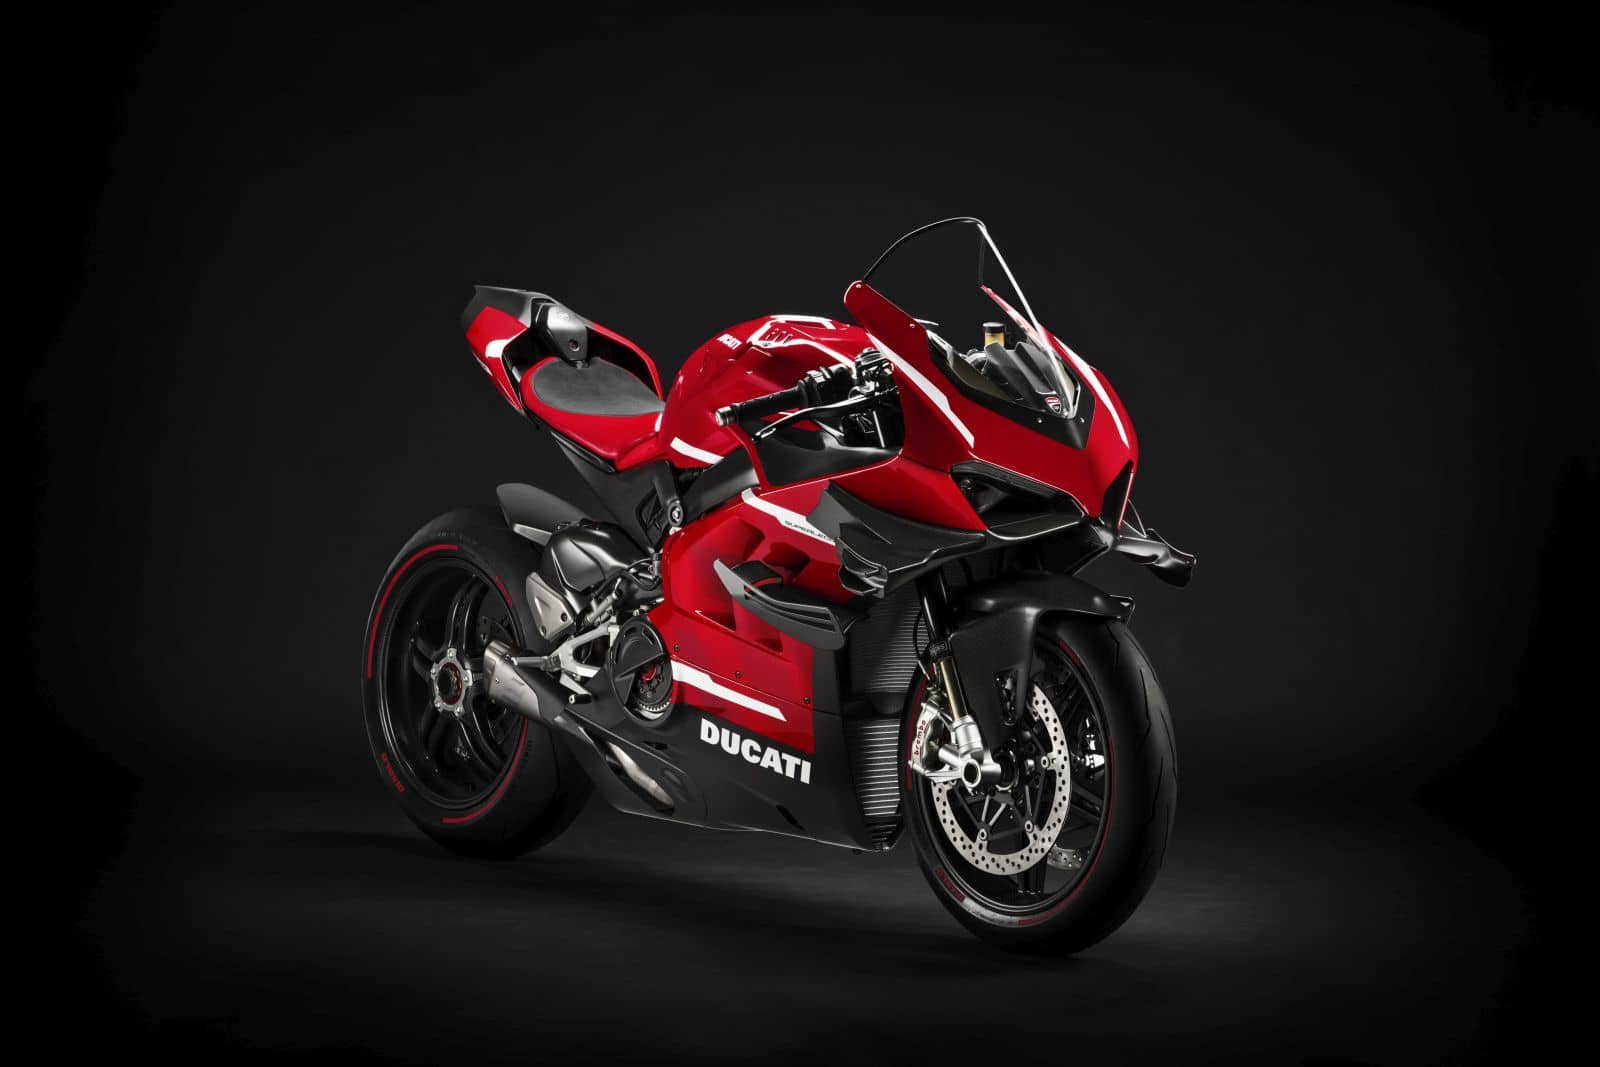 DucatiSuperlegera002